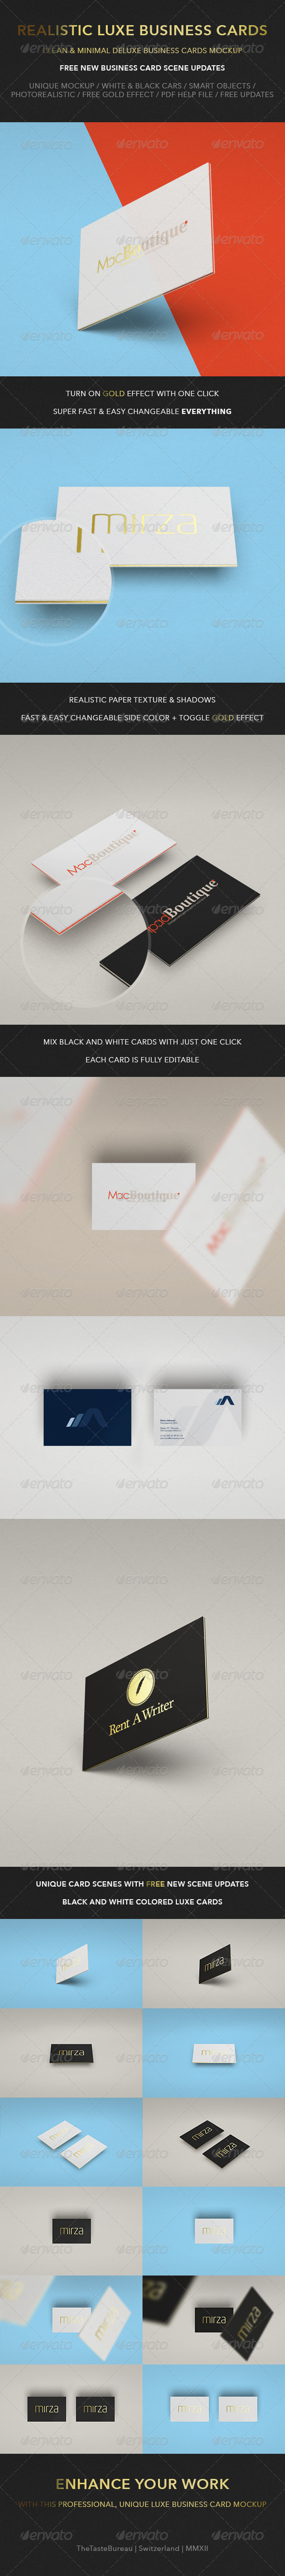 GraphicRiver Realistic Luxe Business Card Mock-Up 6507623